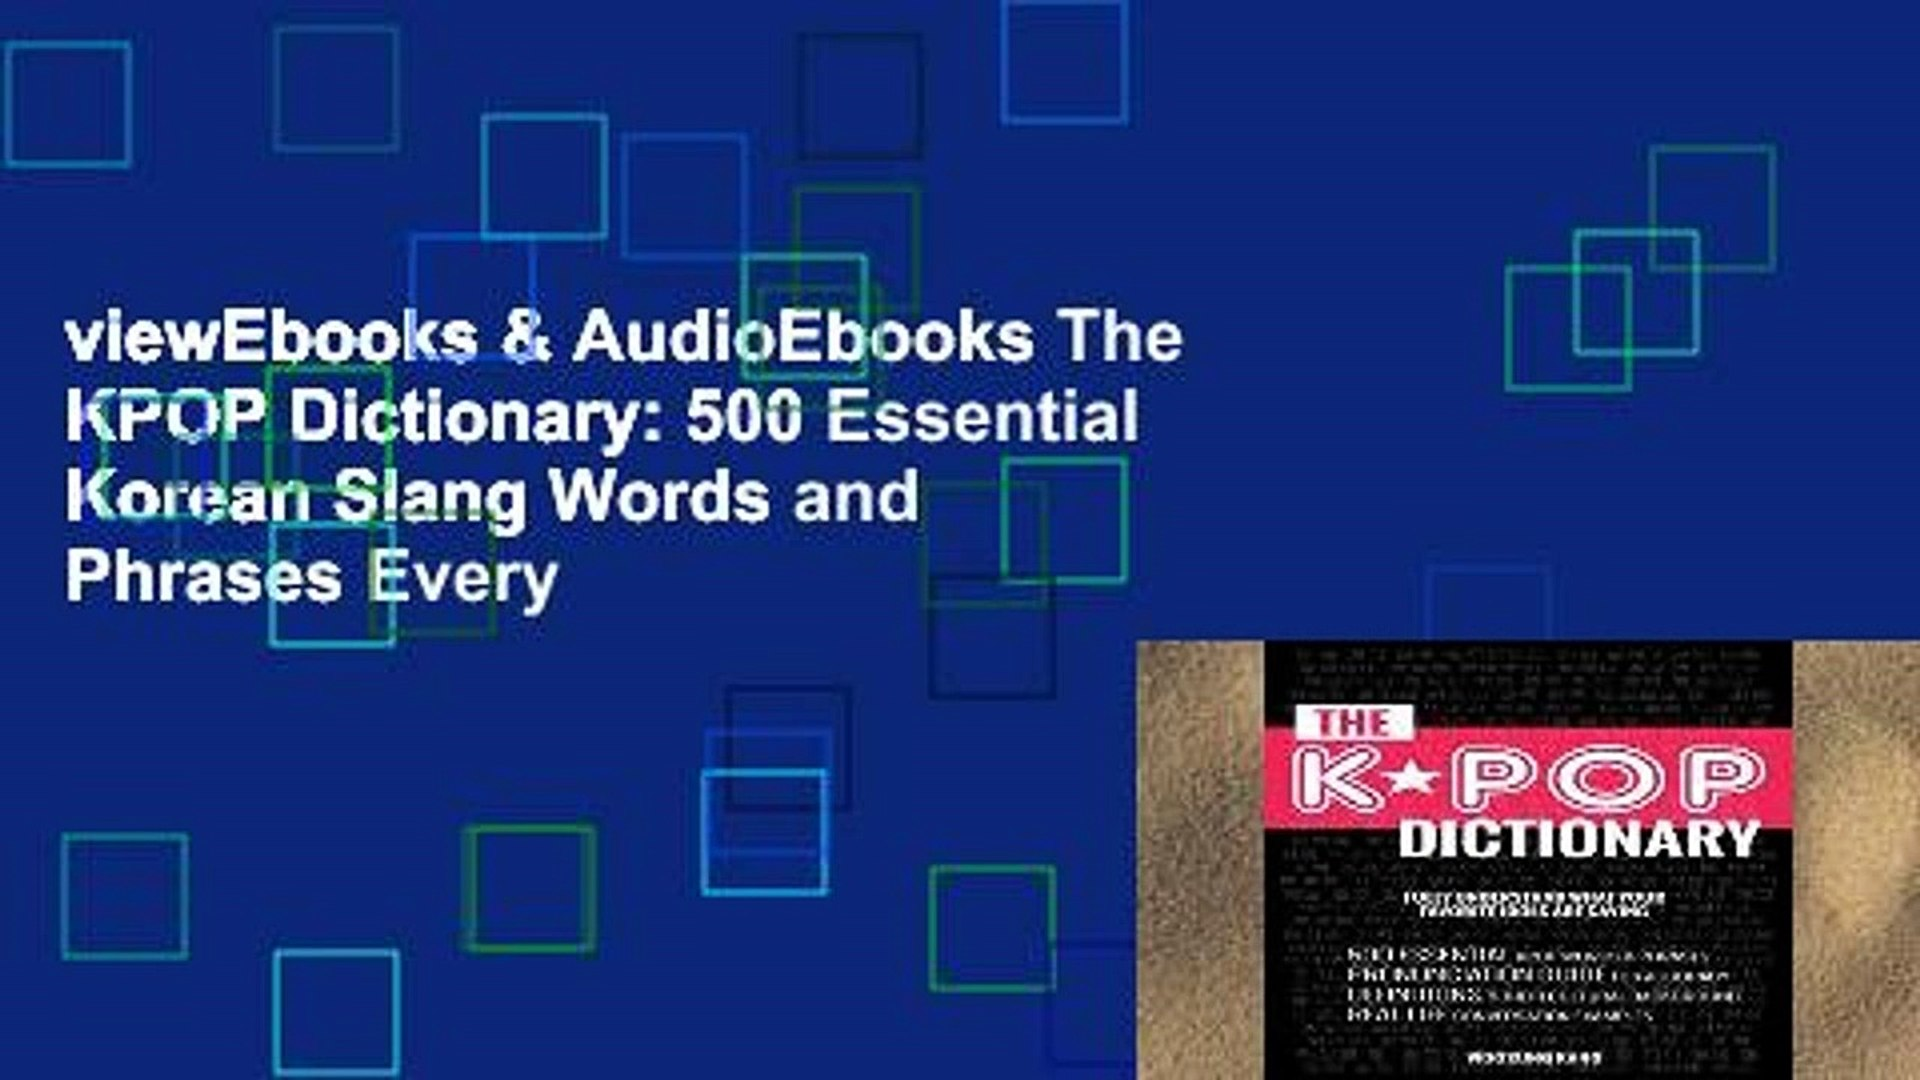 Viewebooks Audioebooks The Kpop Dictionary 500 Essential Korean Slang Words And Phrases Every